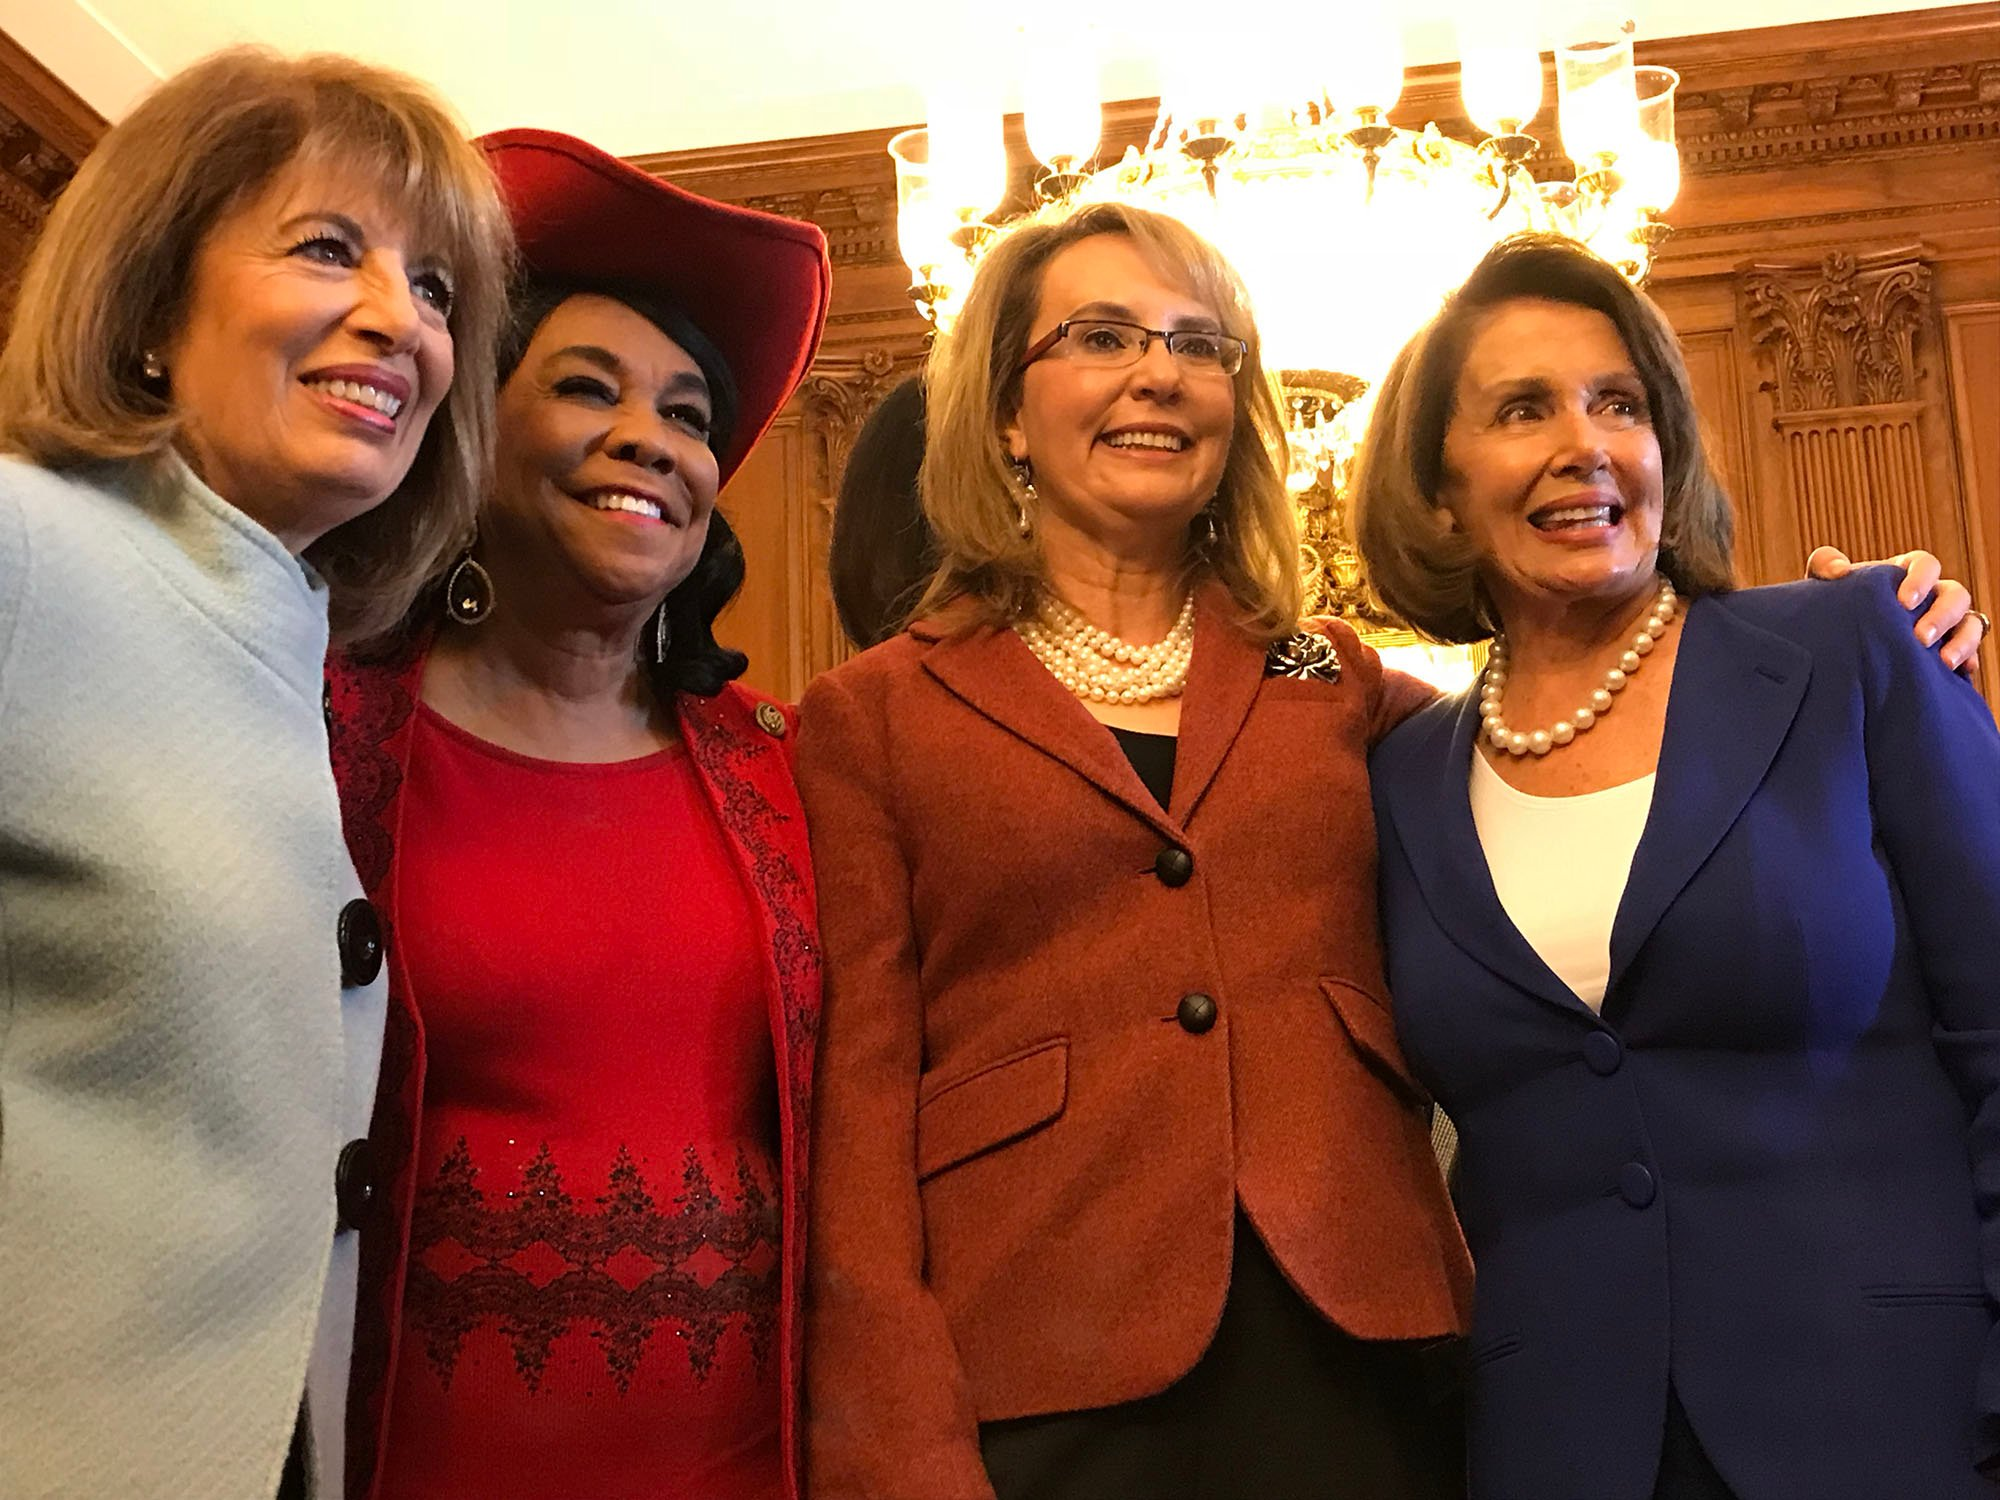 Democratic Reps. Jackie Speier of California and Frederica Wilson of Florida, former Arizona Rep. Gabrielle Giffords and House Minority Leader Nancy Pelosi at the event to honor Giffords and the late Leo Ryan Jr.(Source: Trevor Fay/Cronkite News)